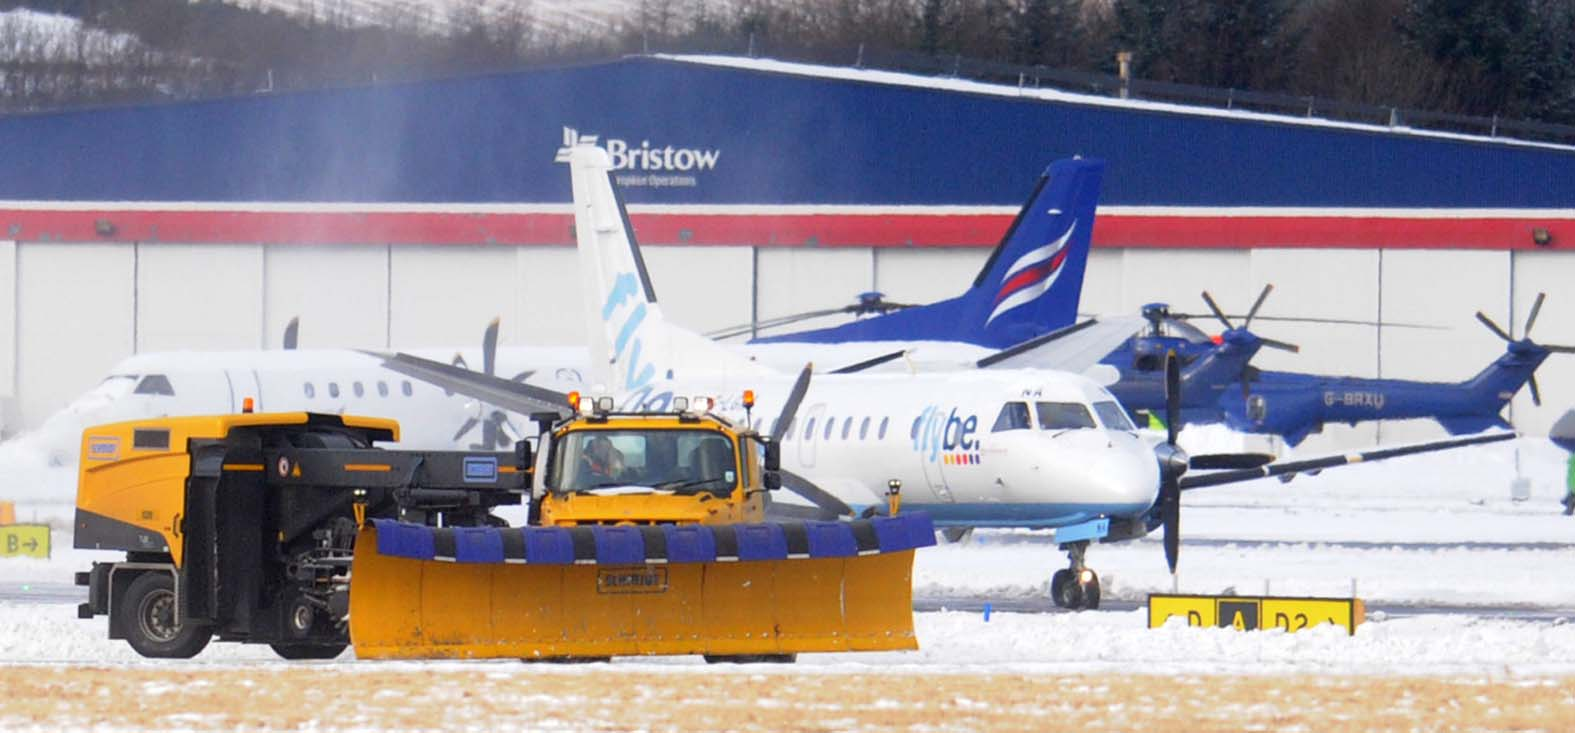 Snow clearing equipment in use at Aberdeen International Airport